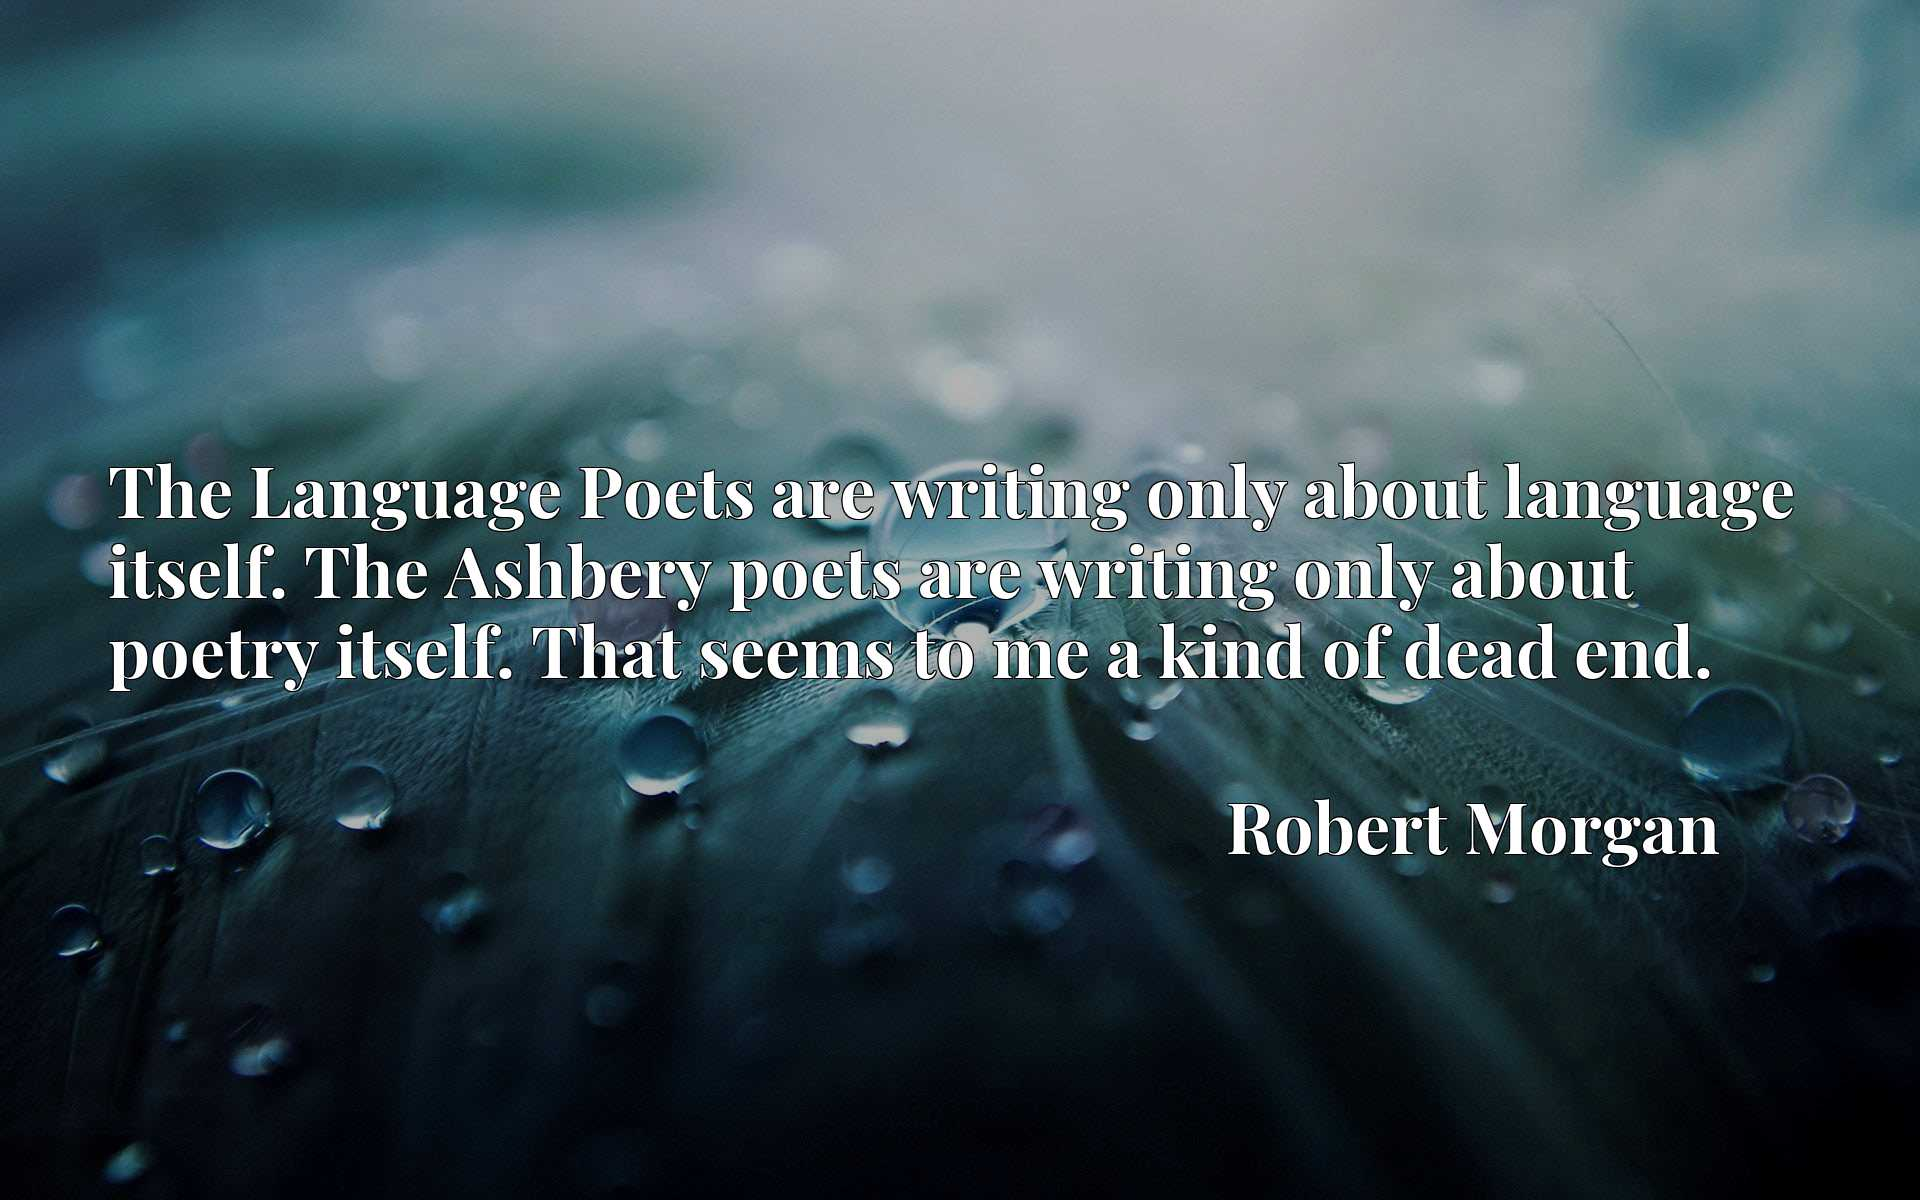 The Language Poets are writing only about language itself. The Ashbery poets are writing only about poetry itself. That seems to me a kind of dead end.